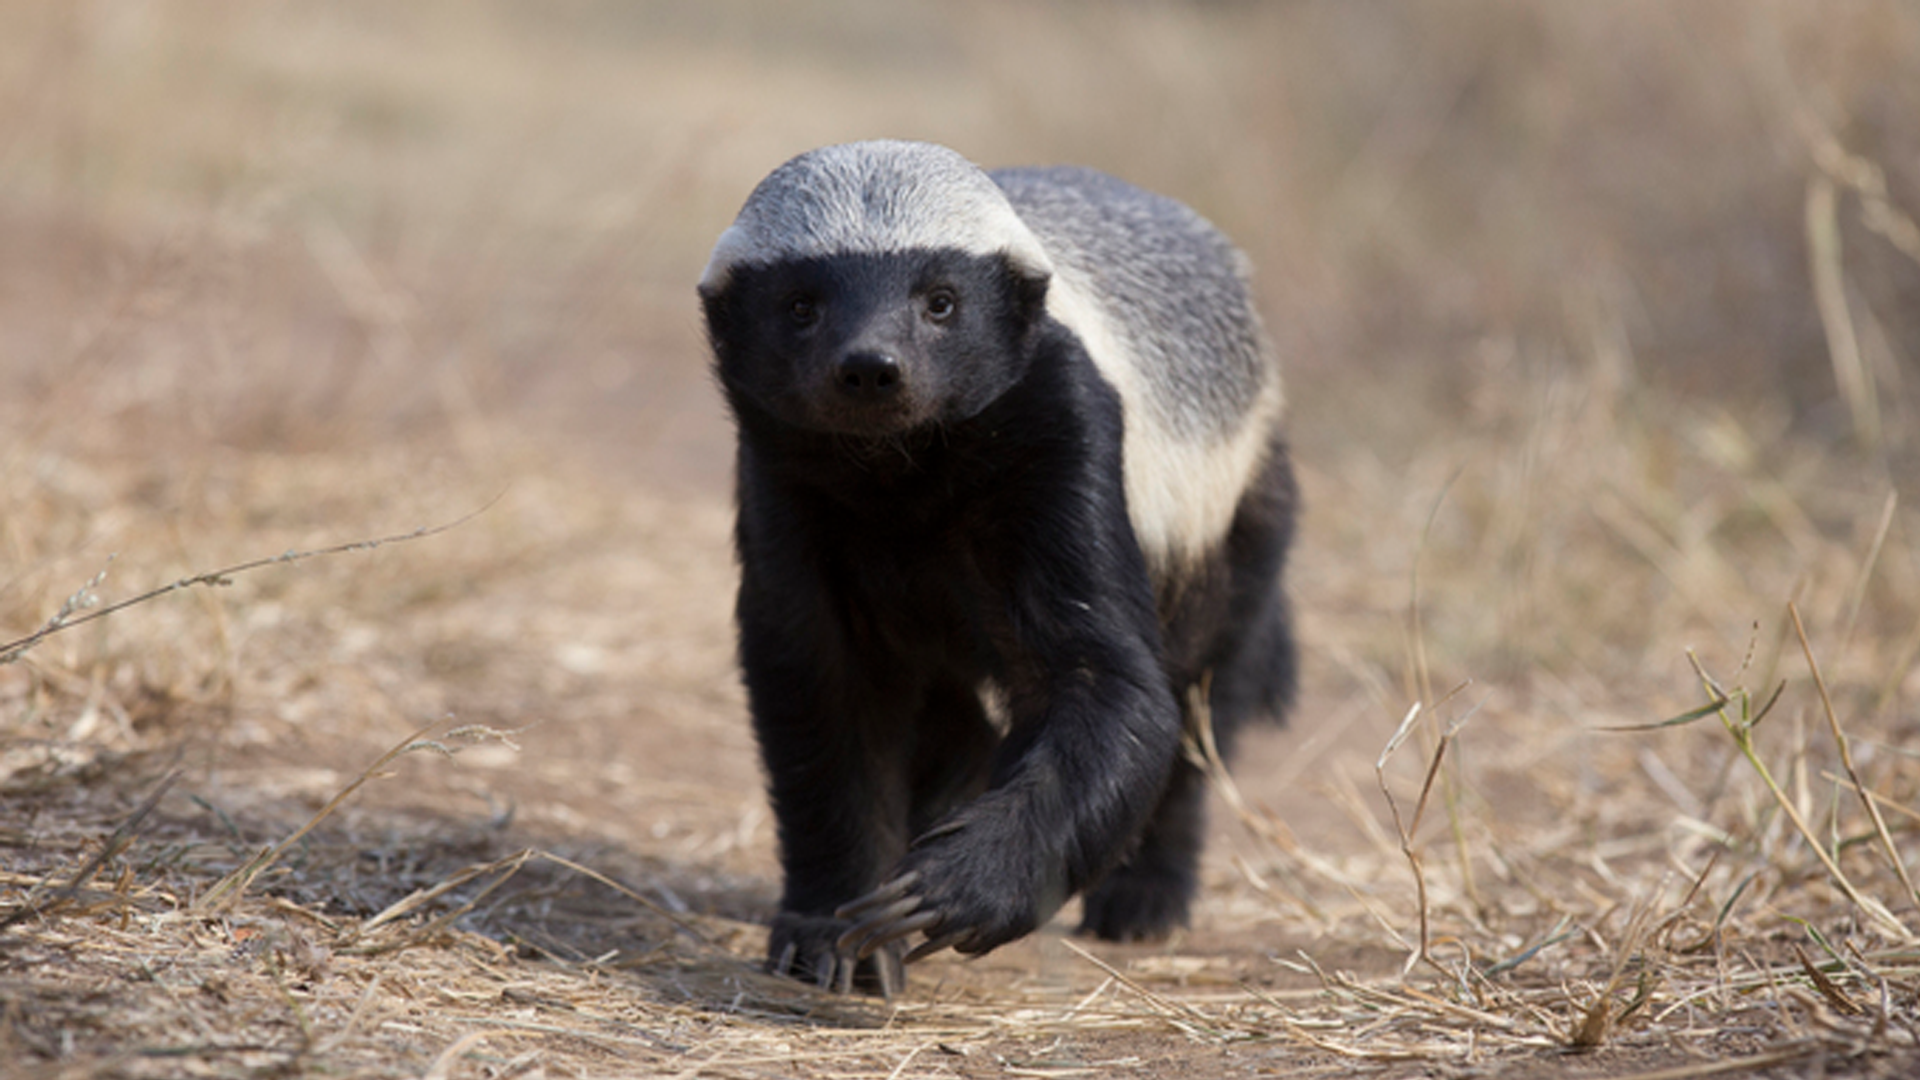 The Mighty Weasel Are Honey Badgers One Of The World S Smartest Animals Nature Pbs